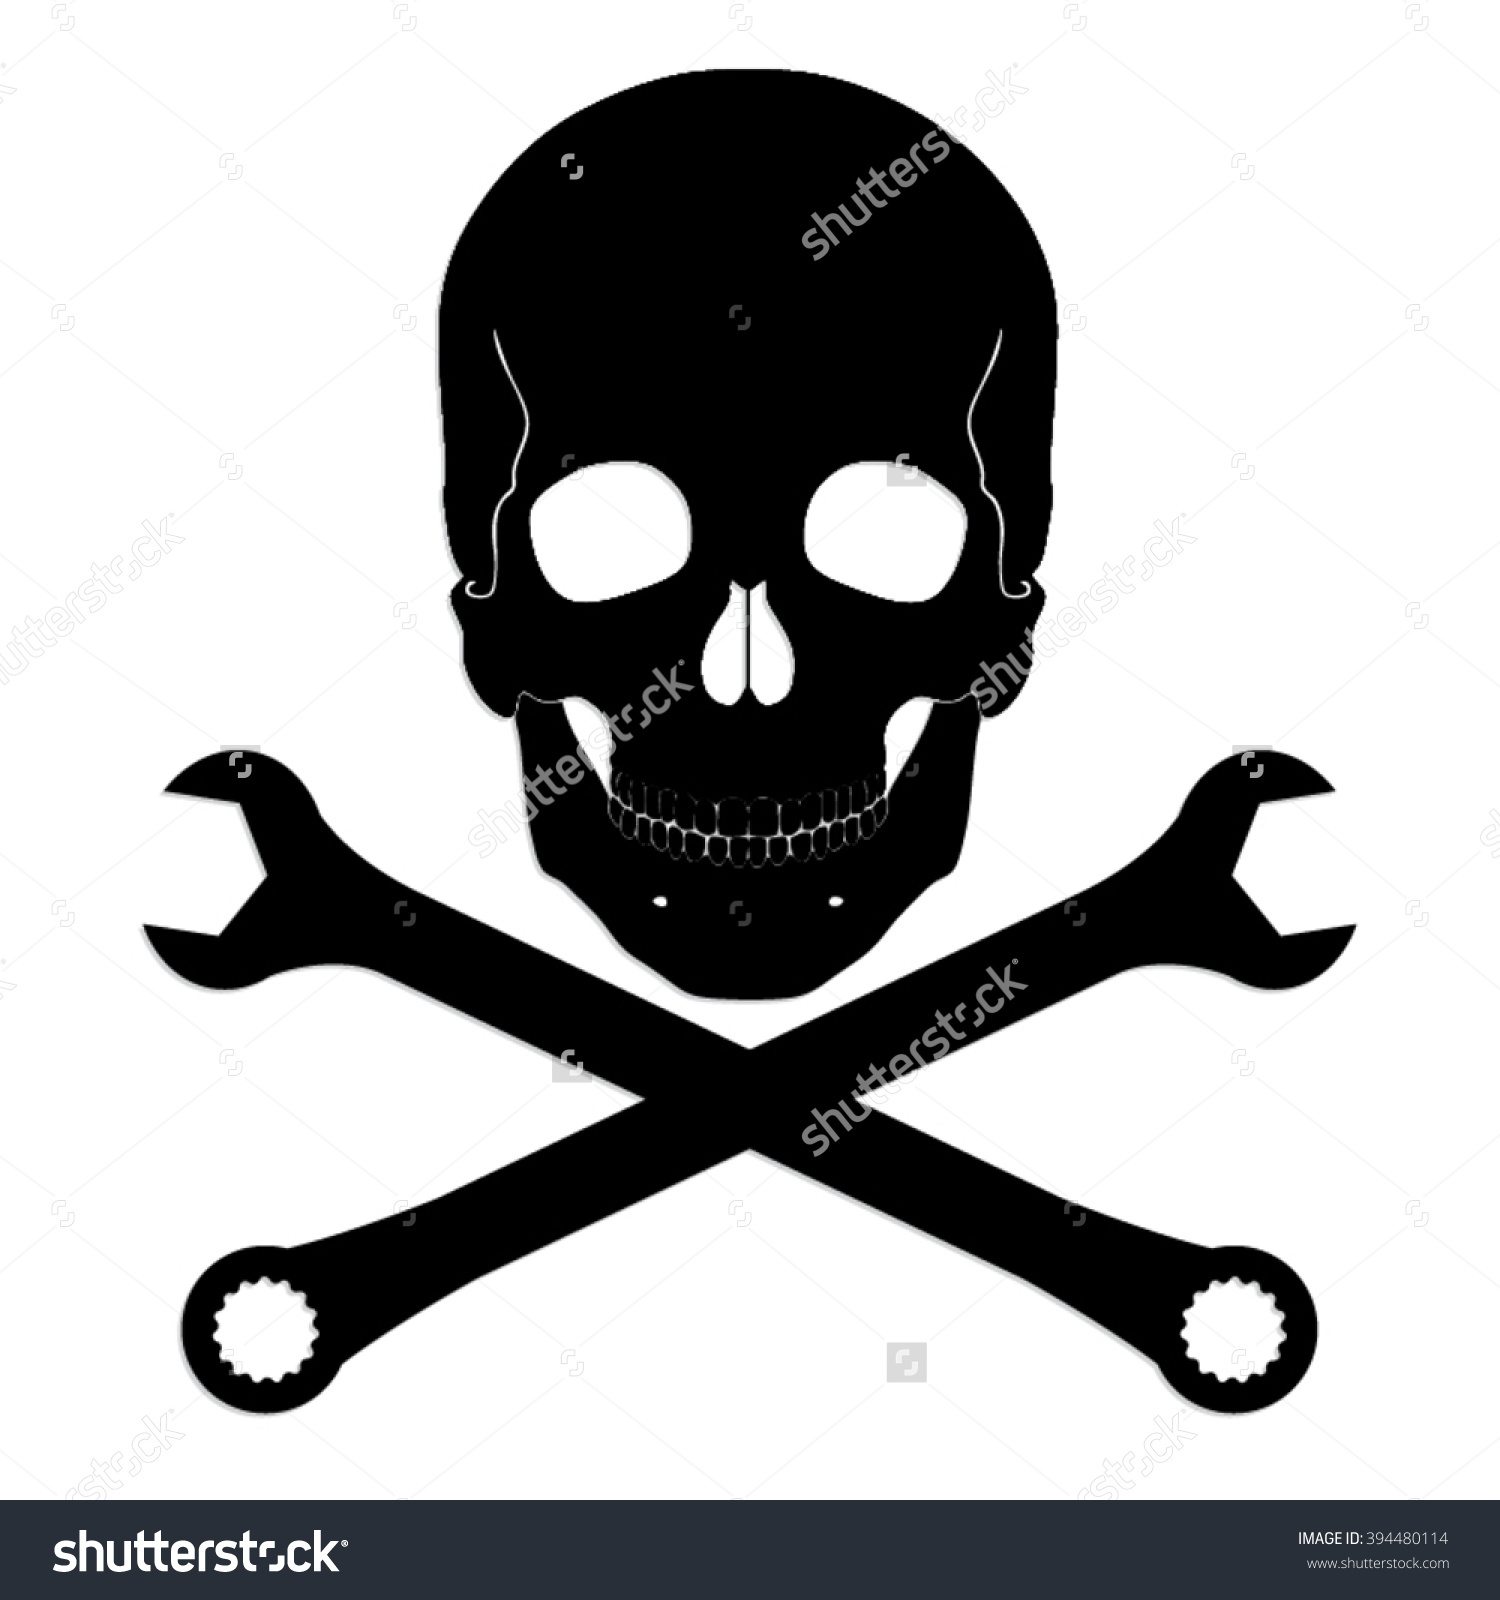 Silhouette Skull Crossed Wrench Vector Symbol Stock Vector.